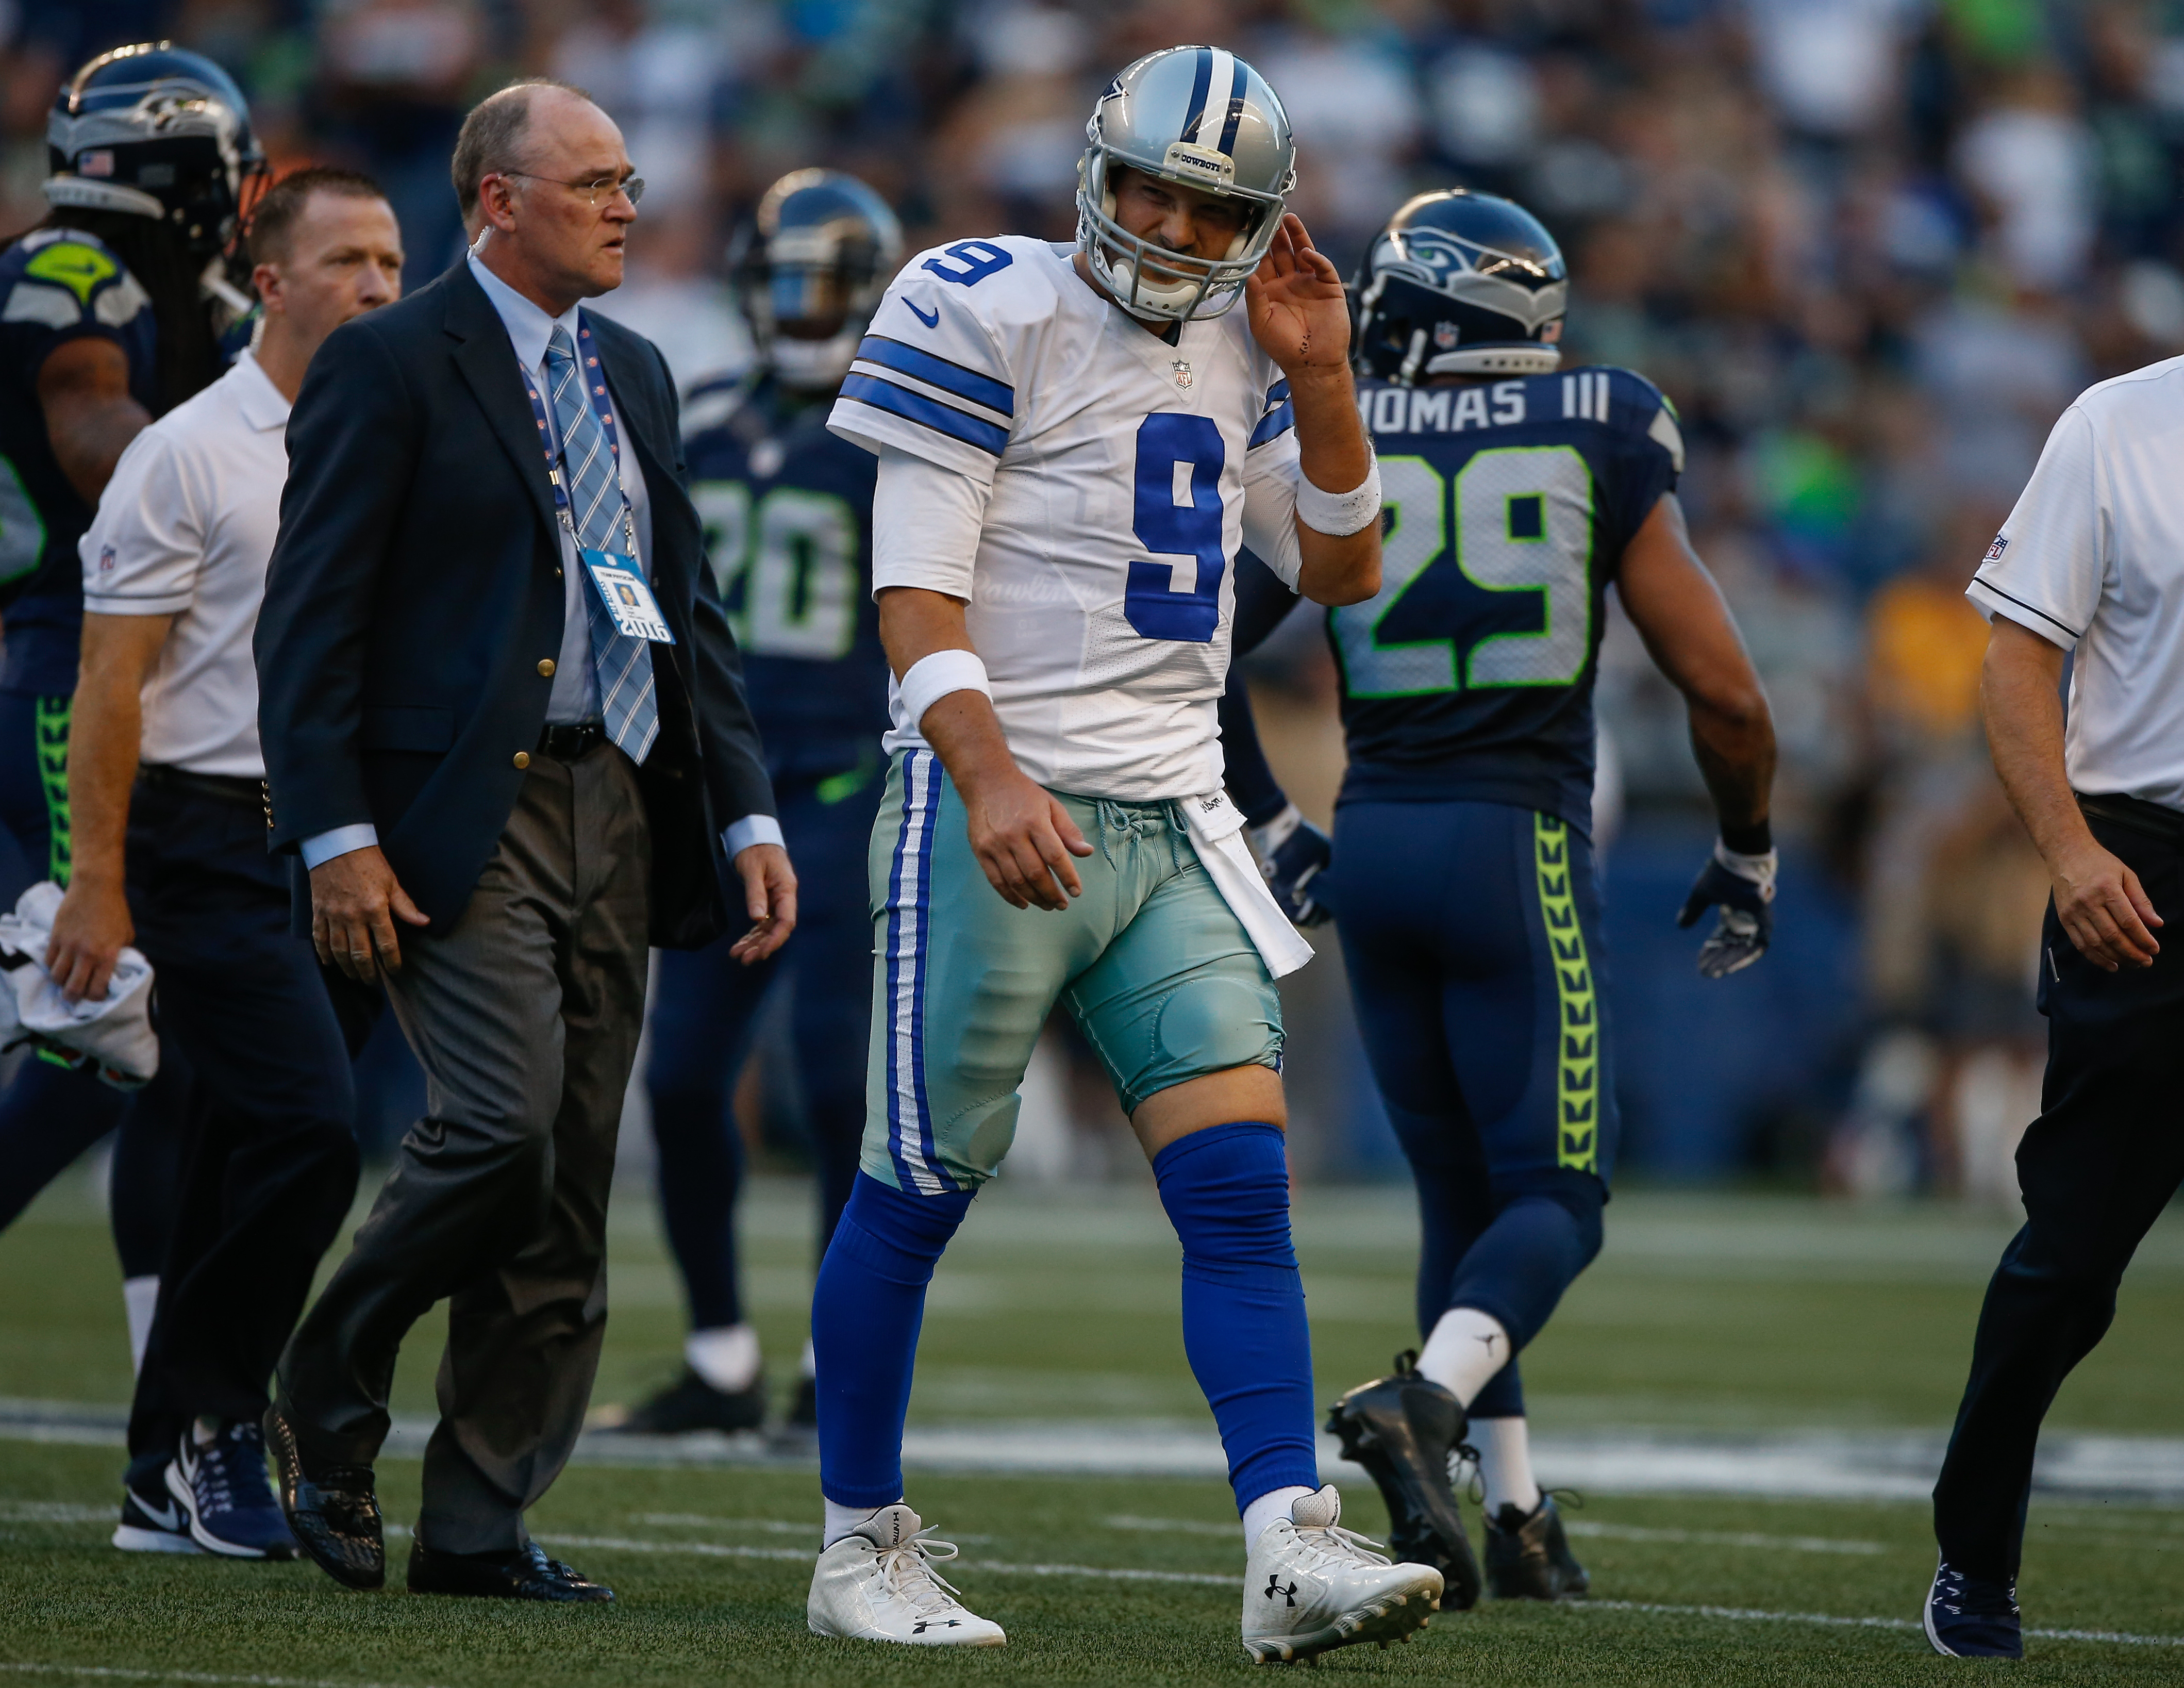 Quarterback Tony Romo of the Dallas Cowboys leaves the field after being injured during a preseason game against the Seattle Seahawks in Seattle, Washington, on Aug. 25, 2016.